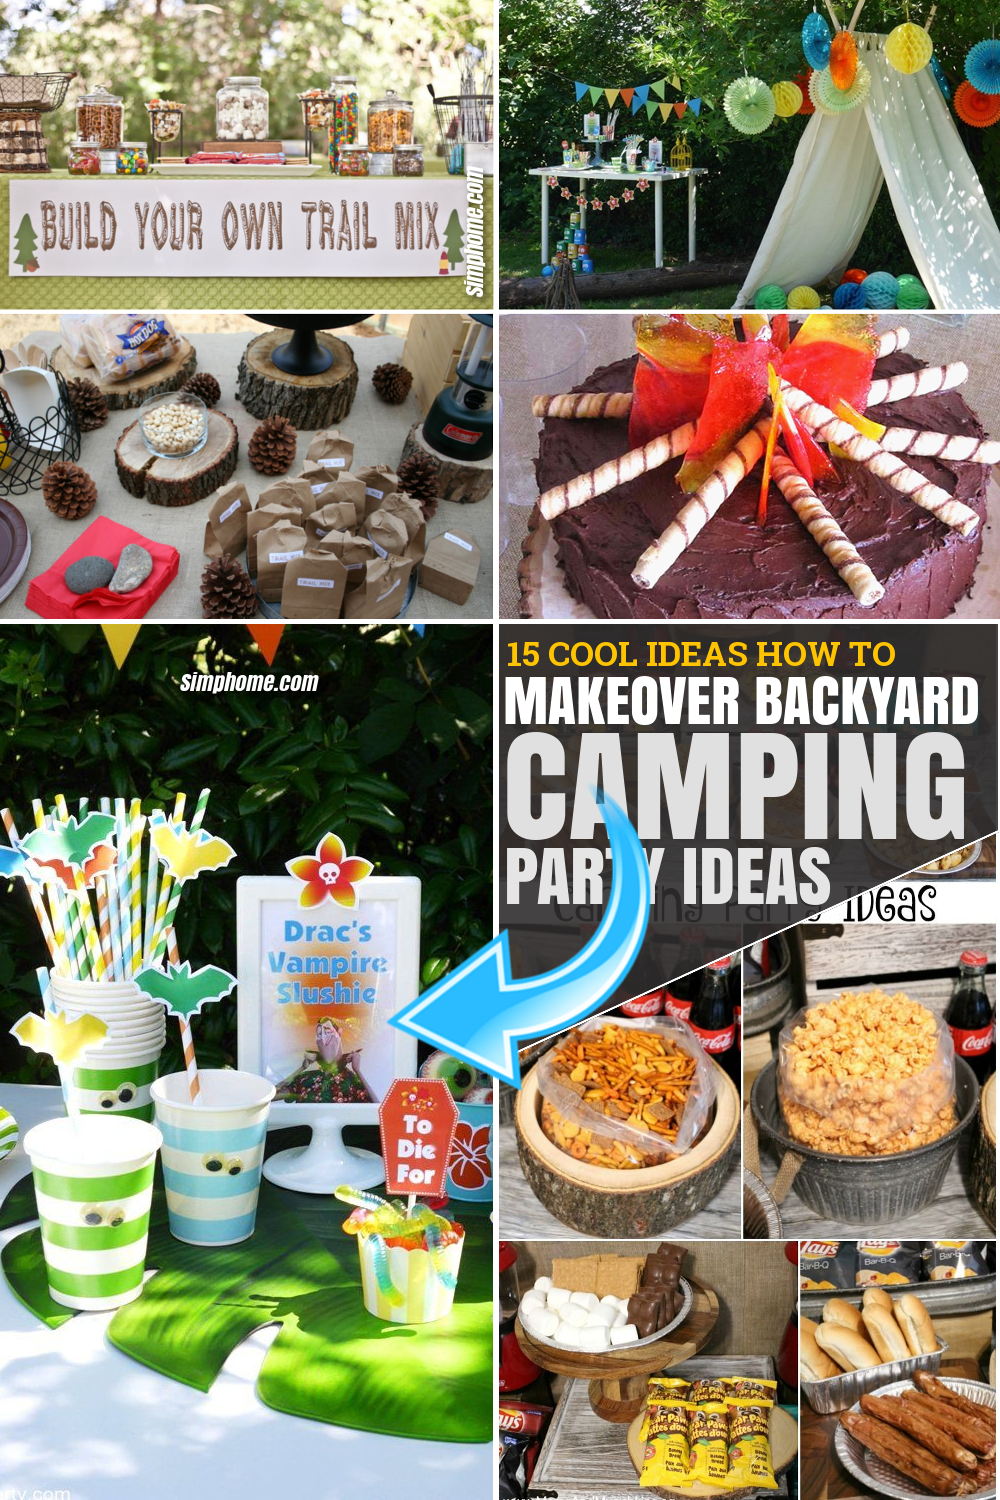 15 Some of the Coolest Ideas by SIMPHOME.COM How to Makeover Backyard Camping Party Ideas